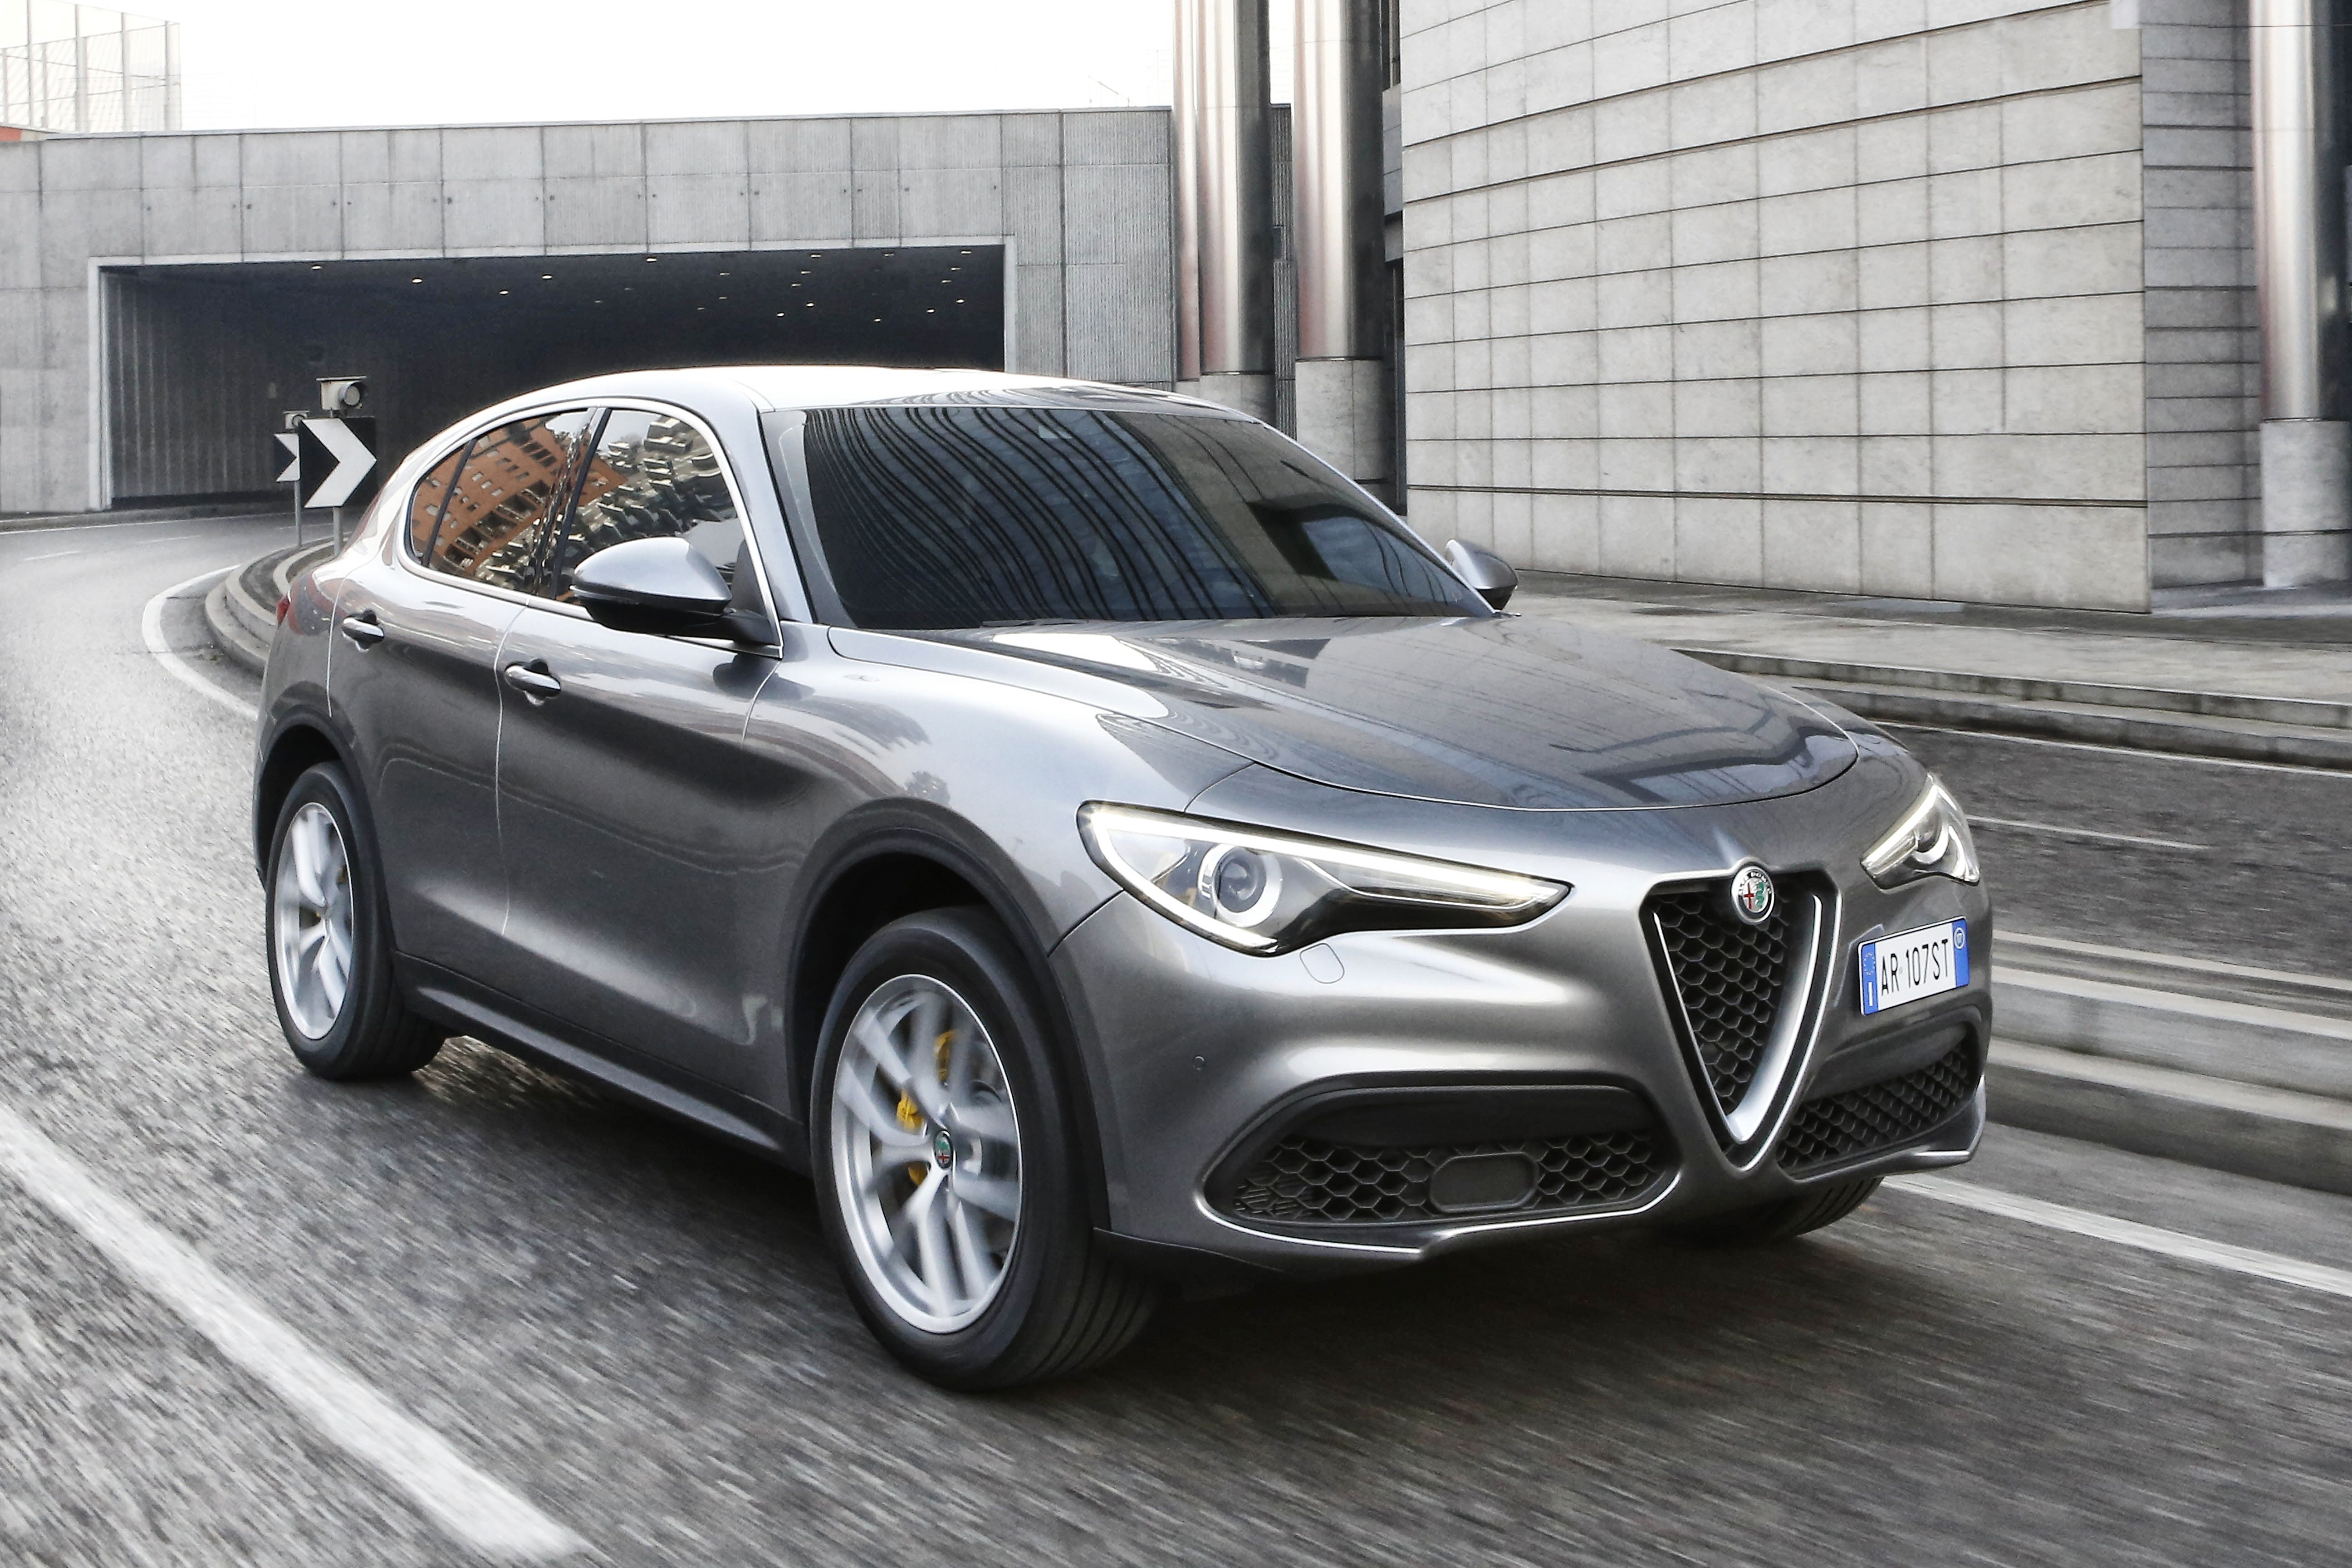 alfa romeo unveils stelvio for first time in europe press fiat group automobiles press. Black Bedroom Furniture Sets. Home Design Ideas